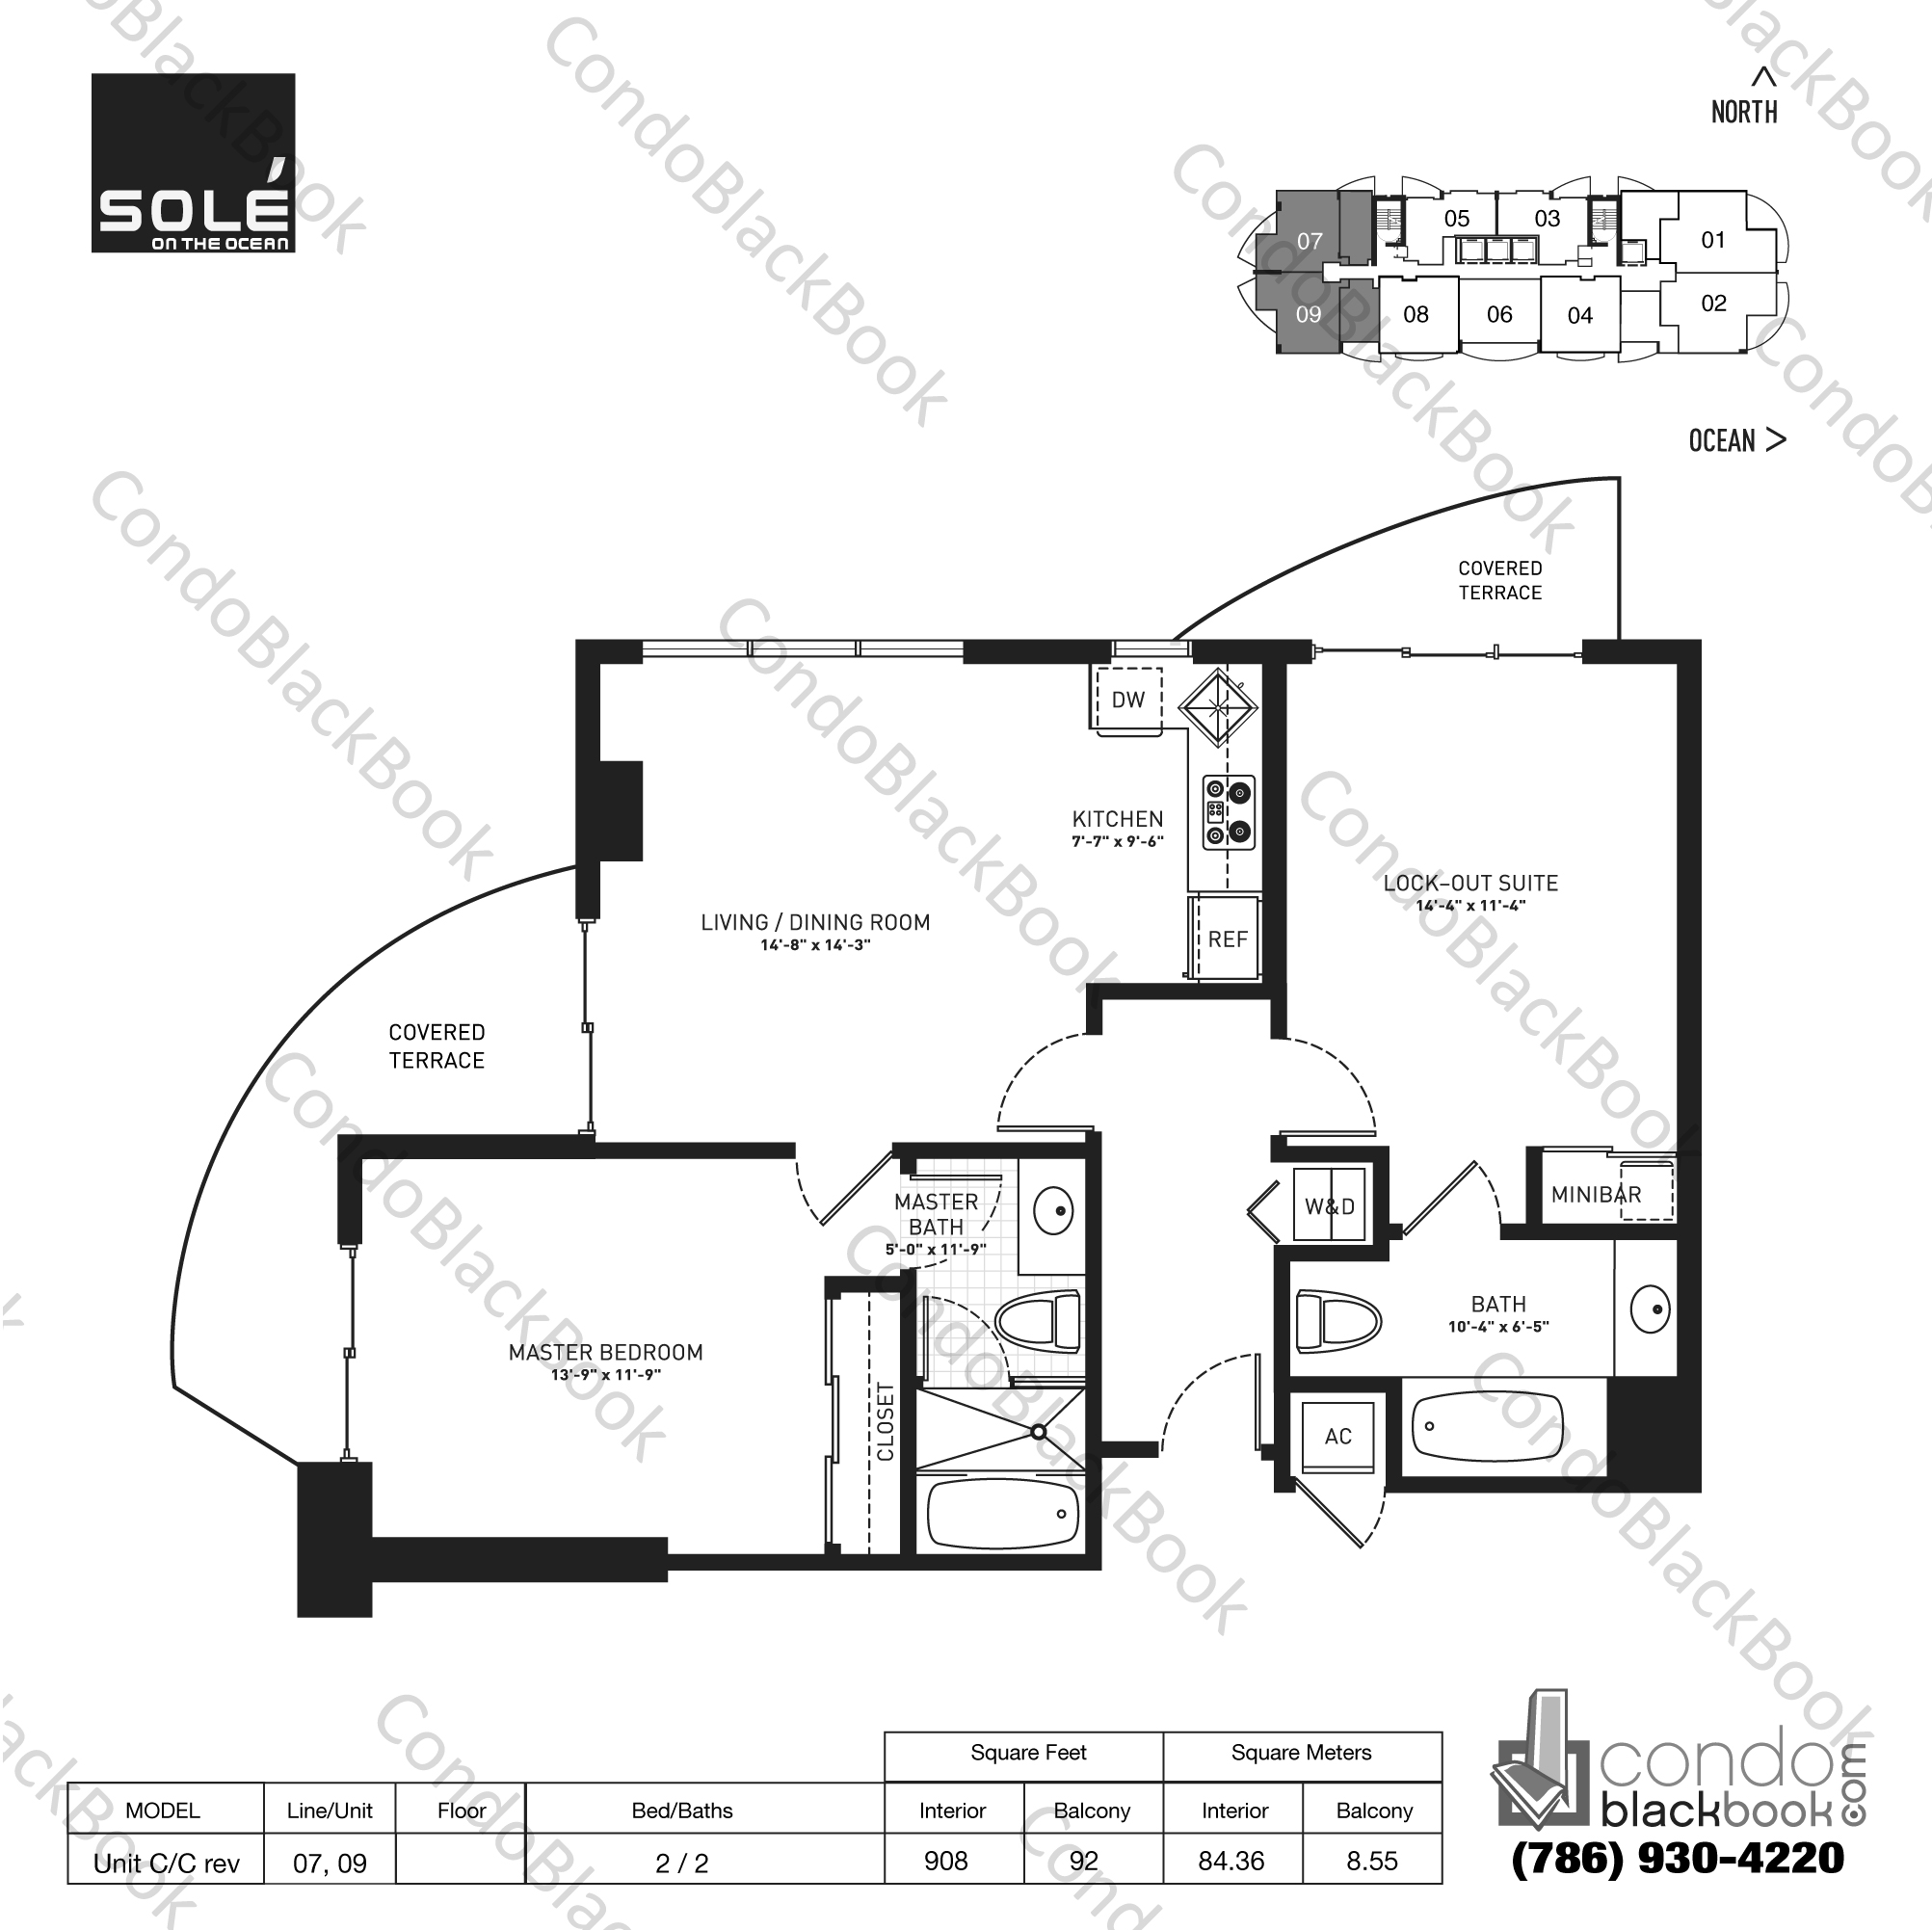 Floor plan for Sole Sunny Isles Beach, model Unit C/C rev, line 07,09, 2 / 2 bedrooms, 908 sq ft